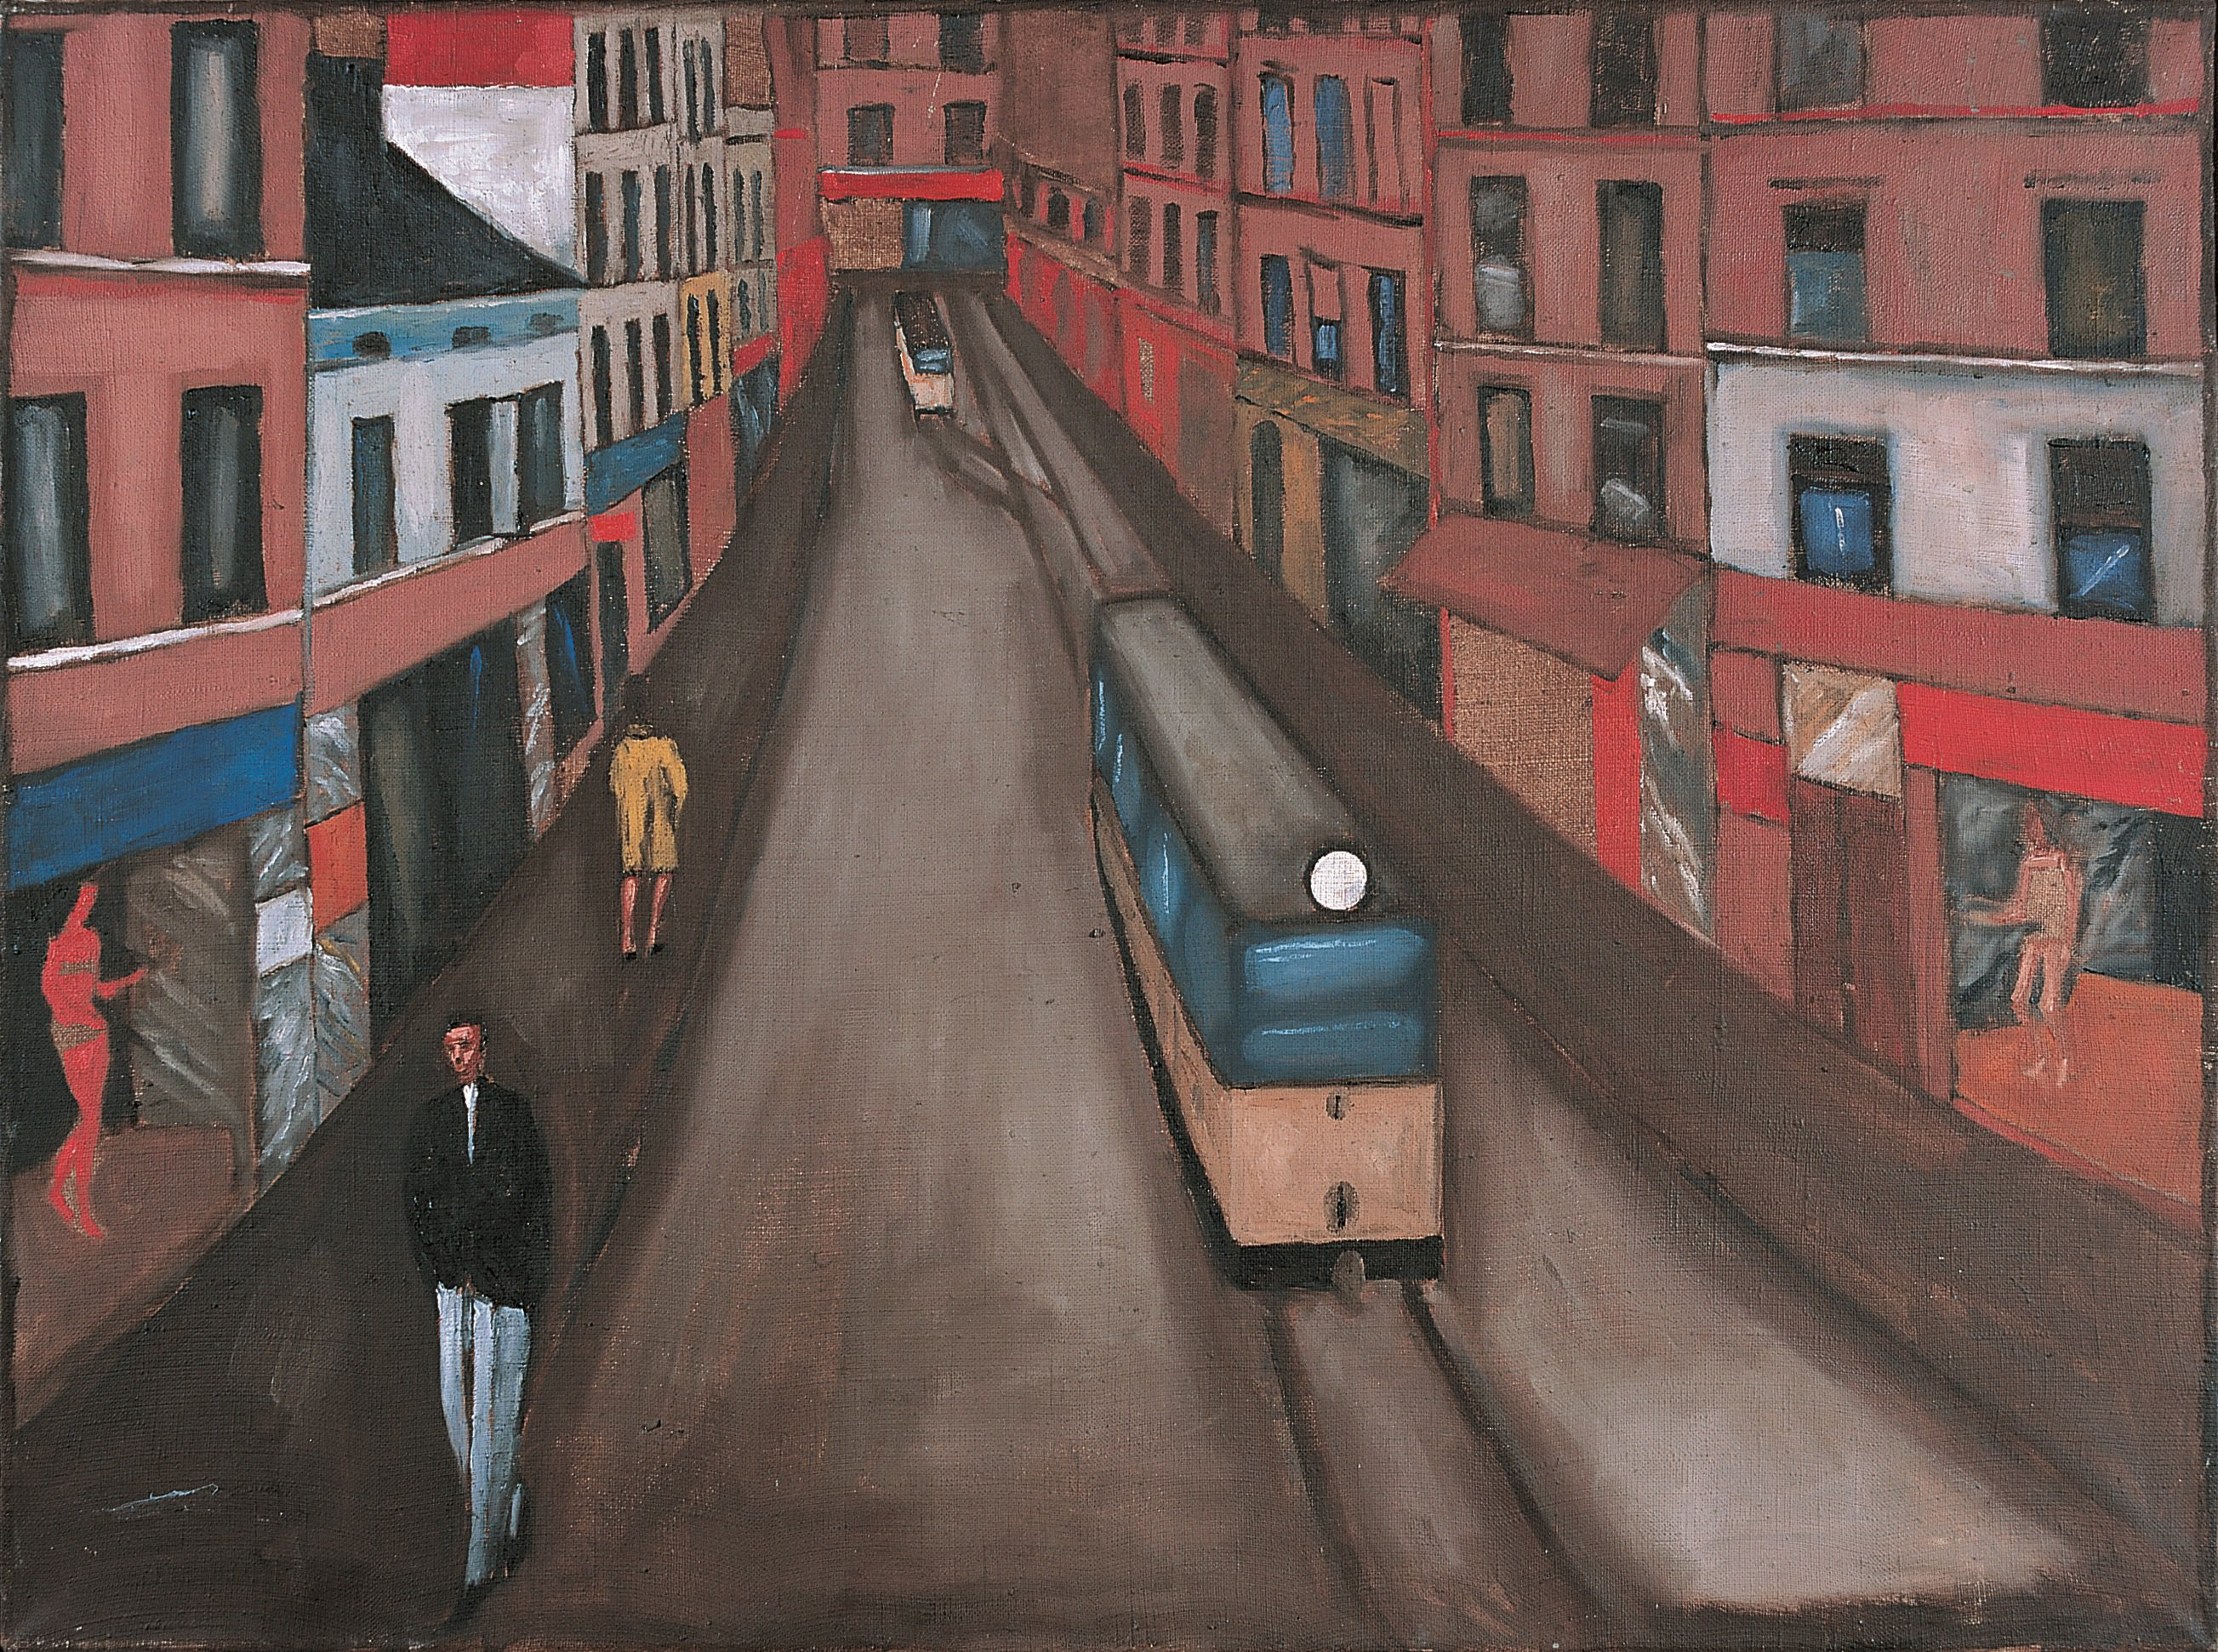 Plate 2. Jerzy Nowosielski. City Landscape, 1959. Oil on canvas. 23 x 32 inches.